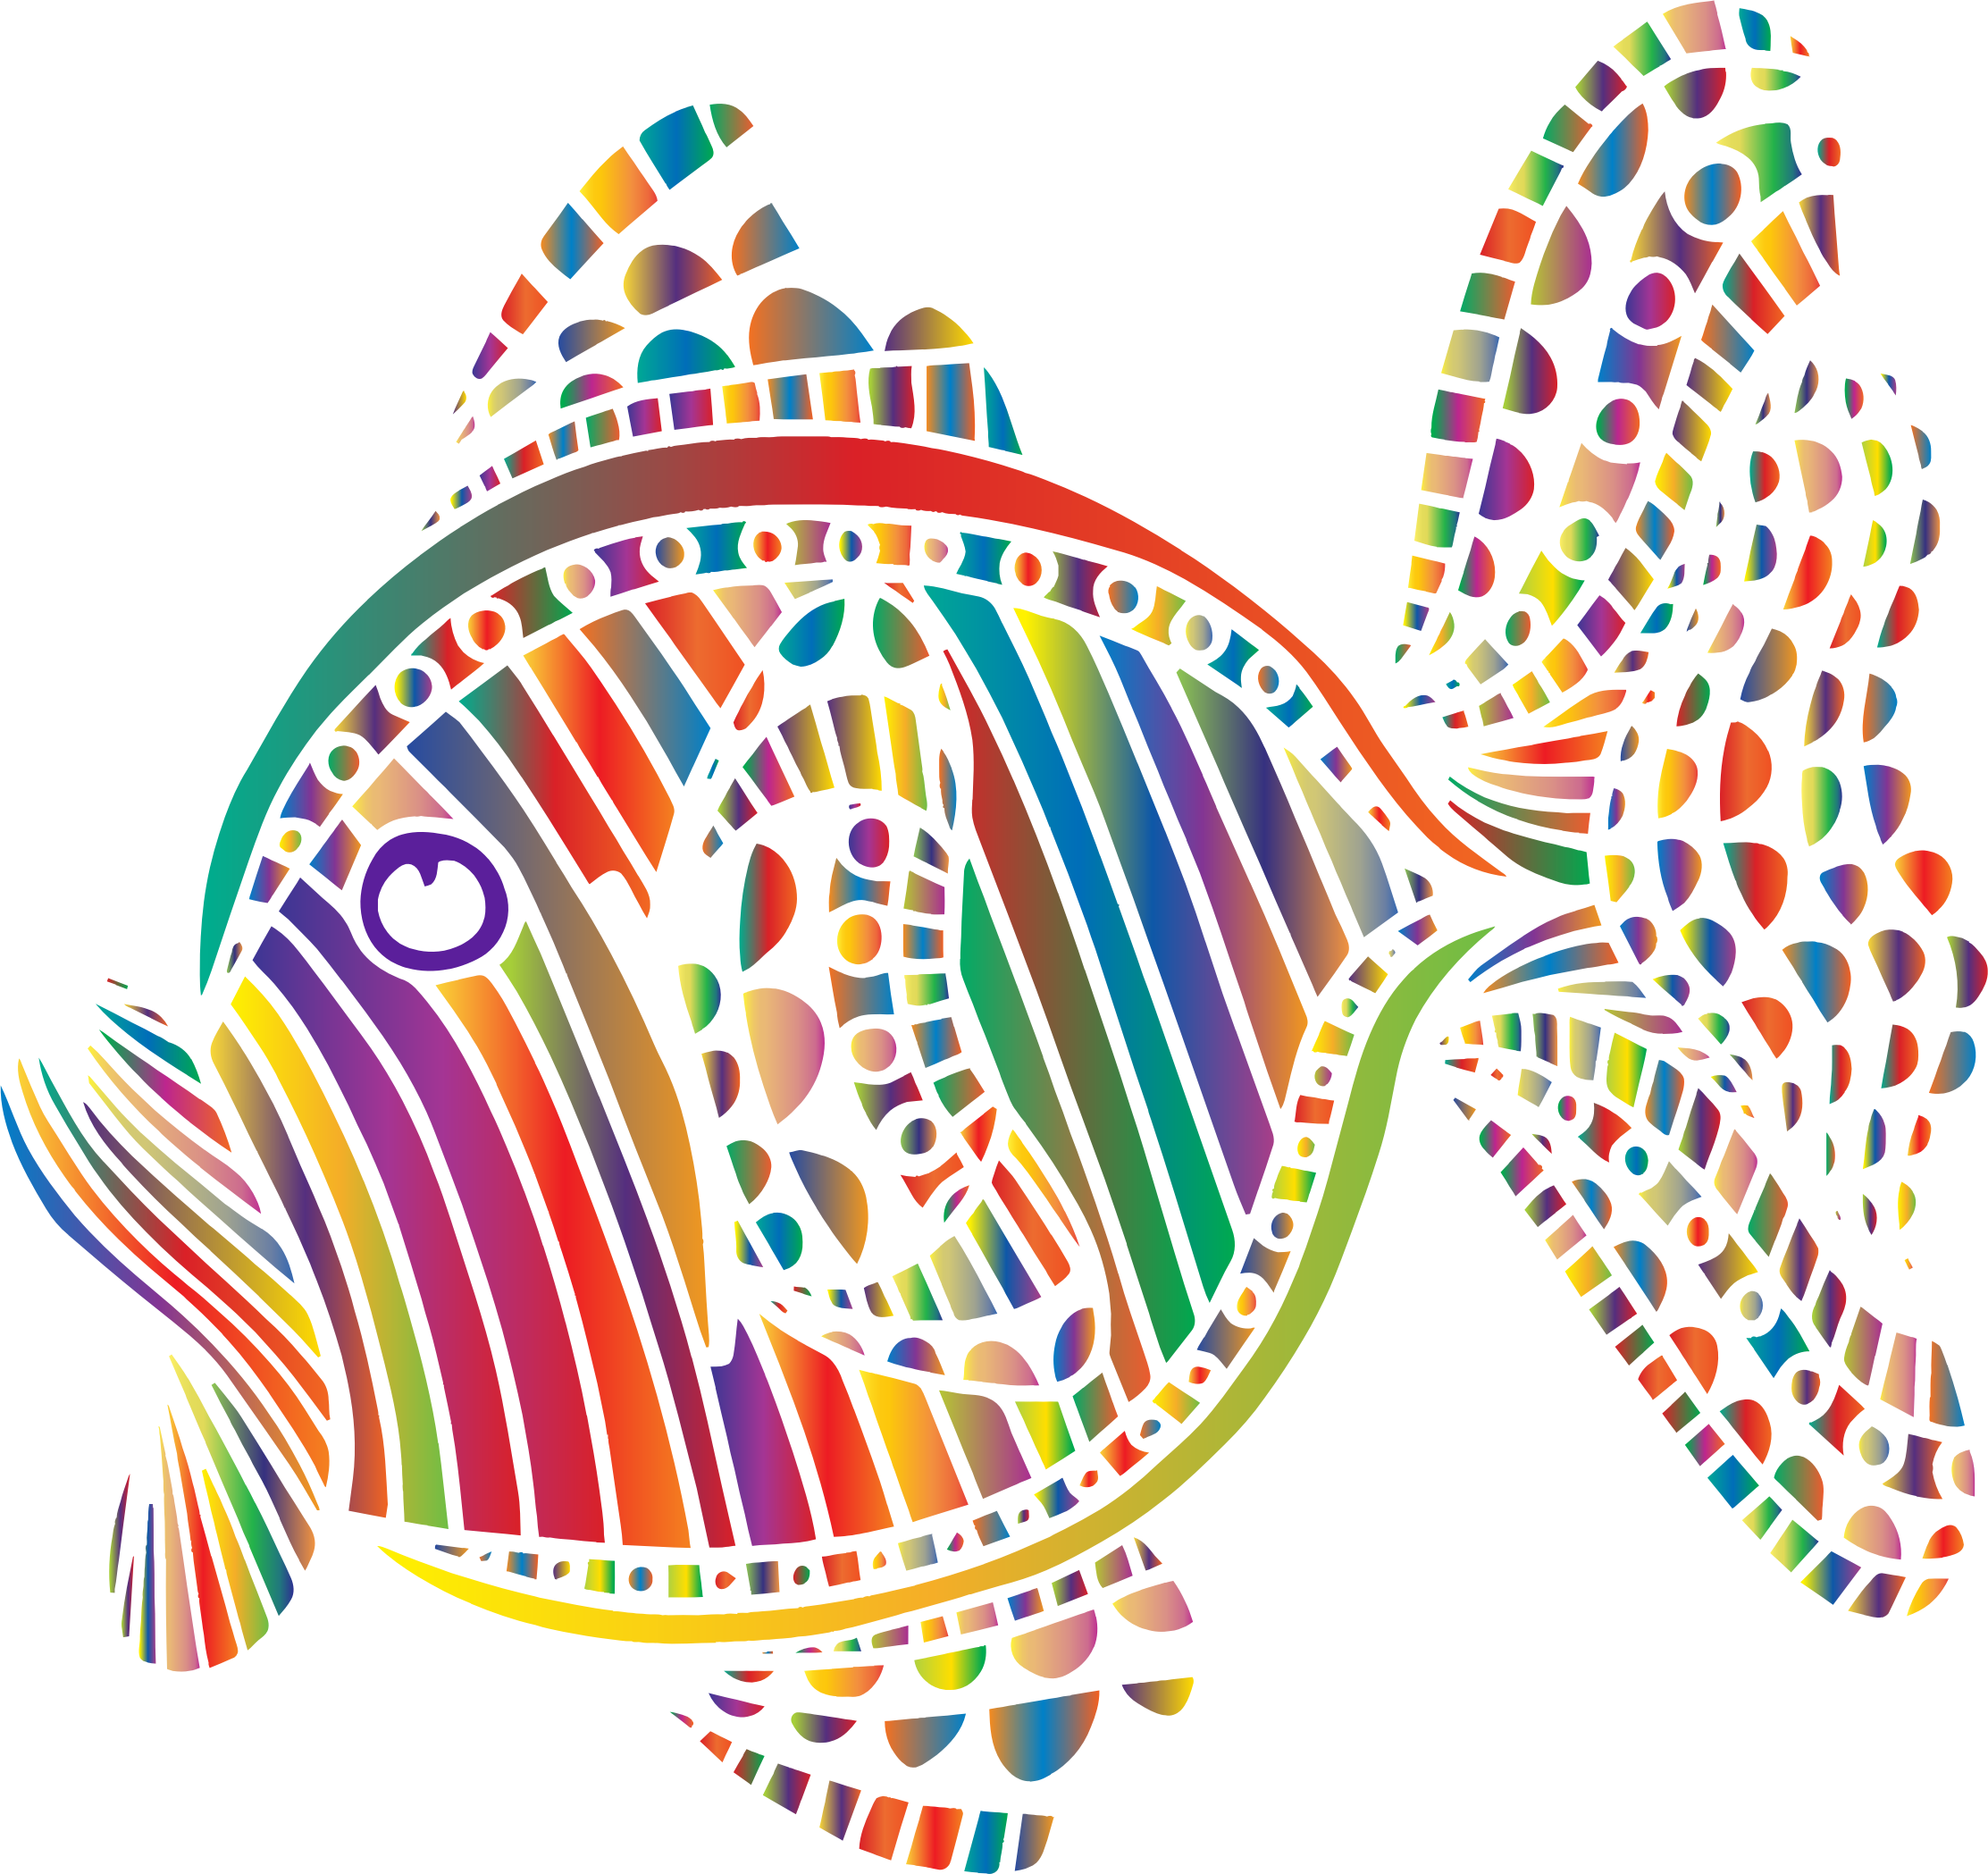 Colorful fish clipart image Clipart - Abstract Colorful Fish 6 image